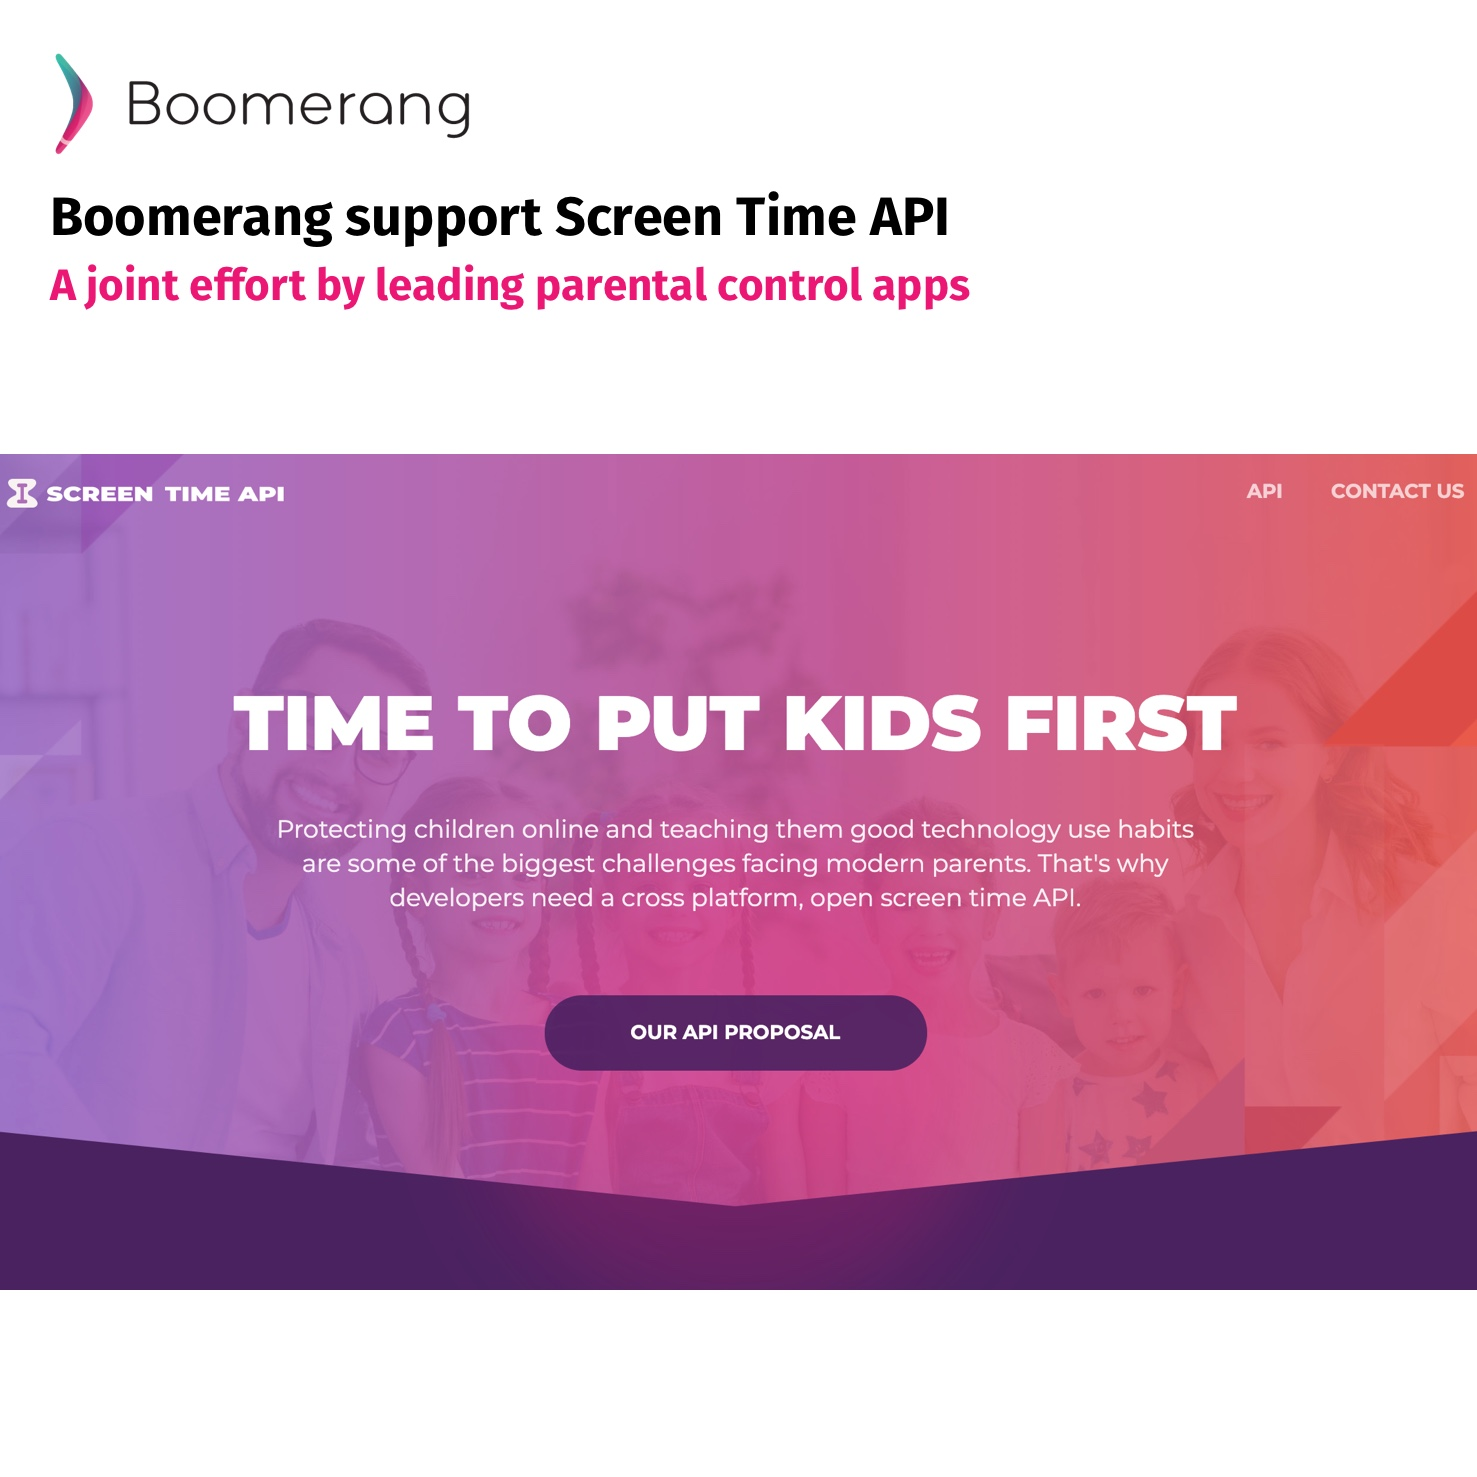 Screen time API